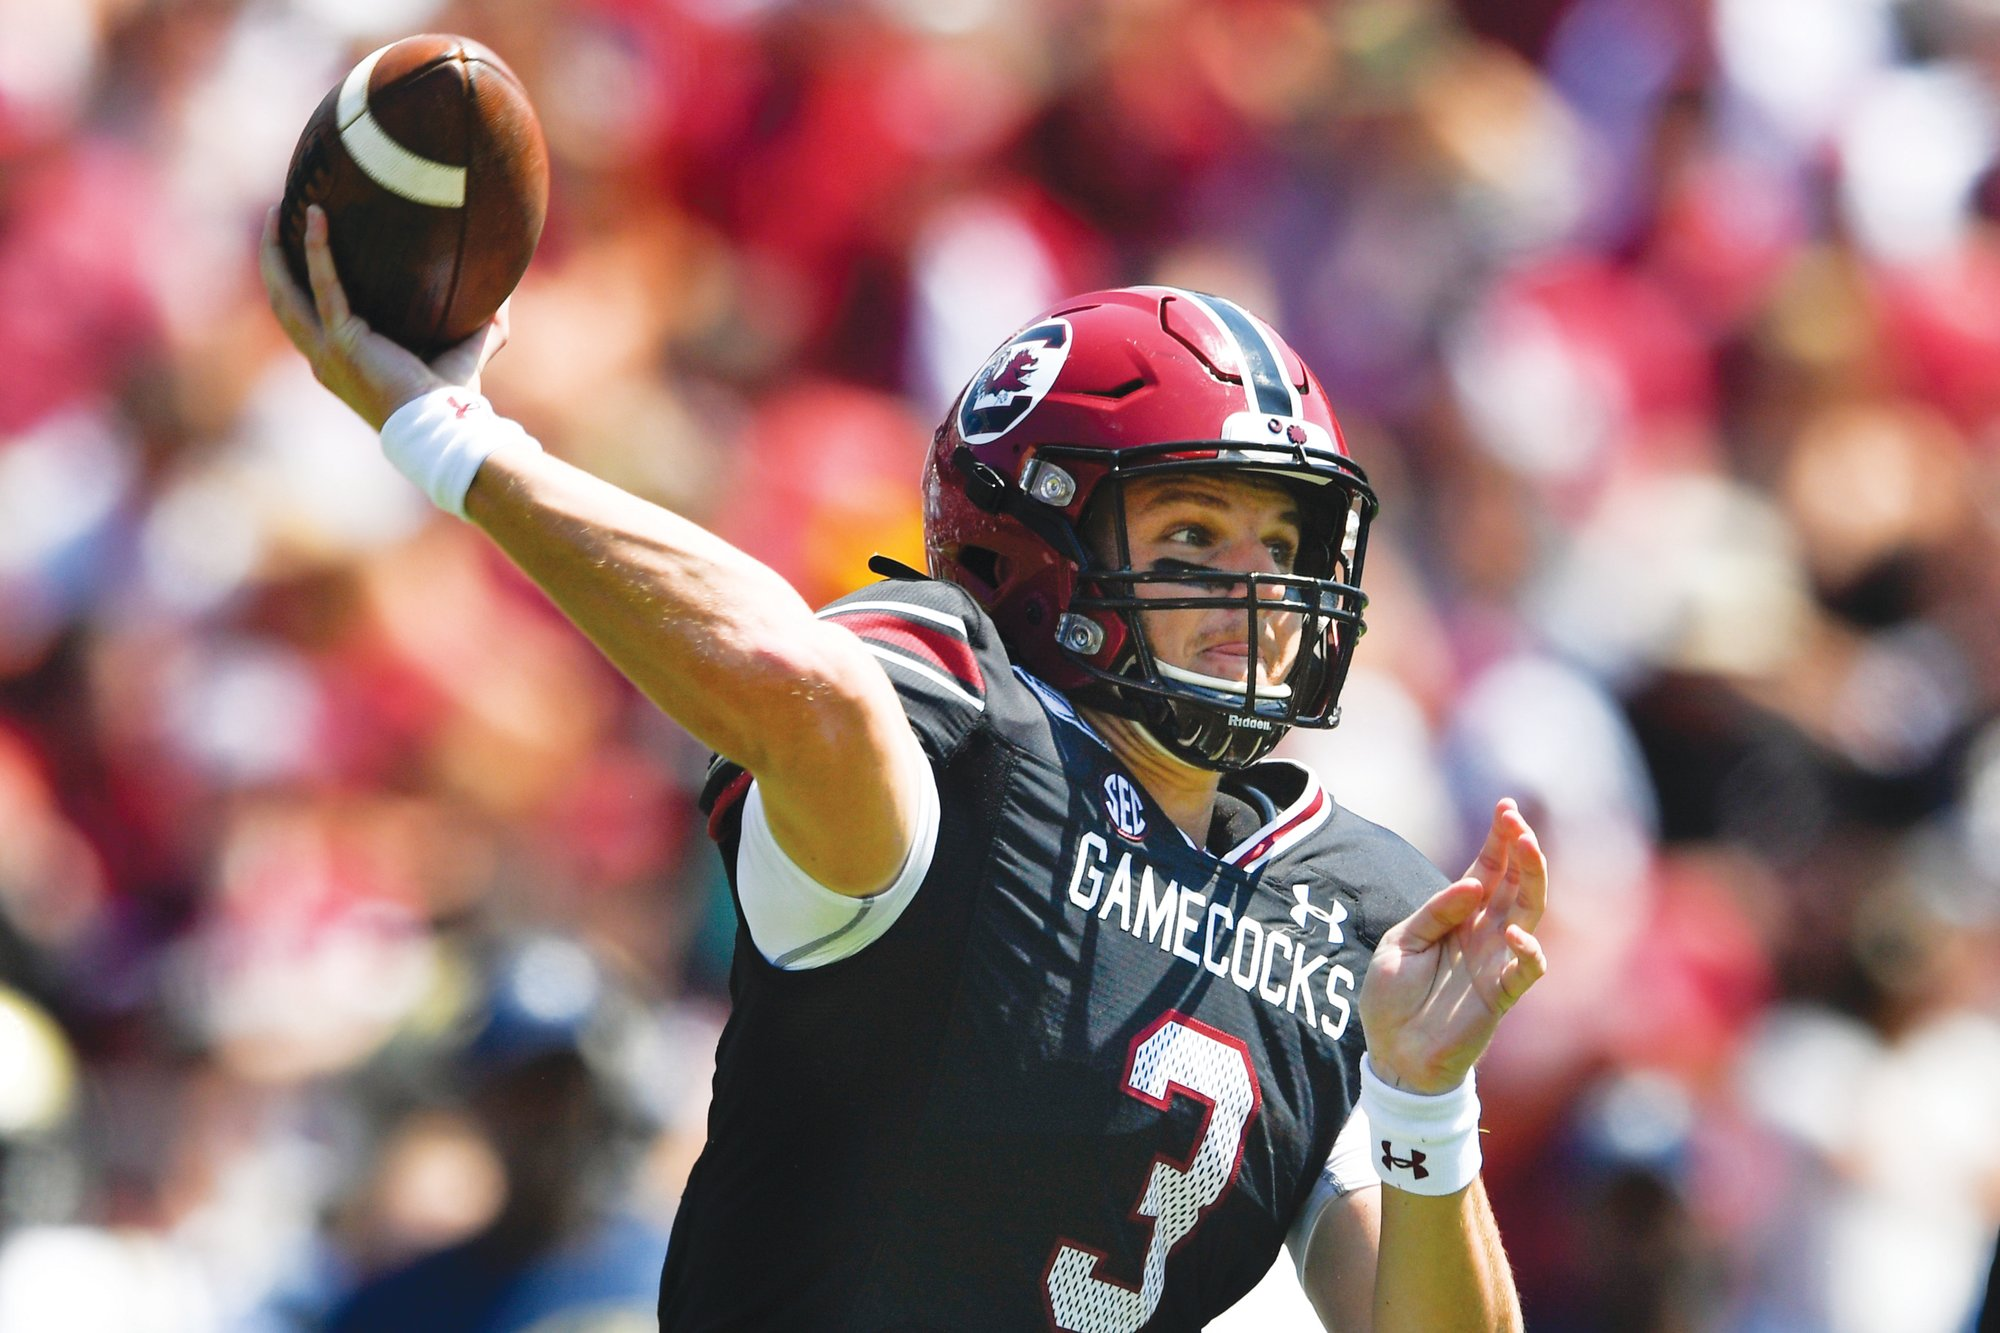 THE ASSOCIATED PRESSSouth Carolina quarterback Ryan Hilinski had a tremendous collegiate debut in the Gamecocks' 72-10 win over Charleston Southern on Saturday. He will face a big test this week as USC plays host to No. 2 Alabama at Williams-Brice Stadium.